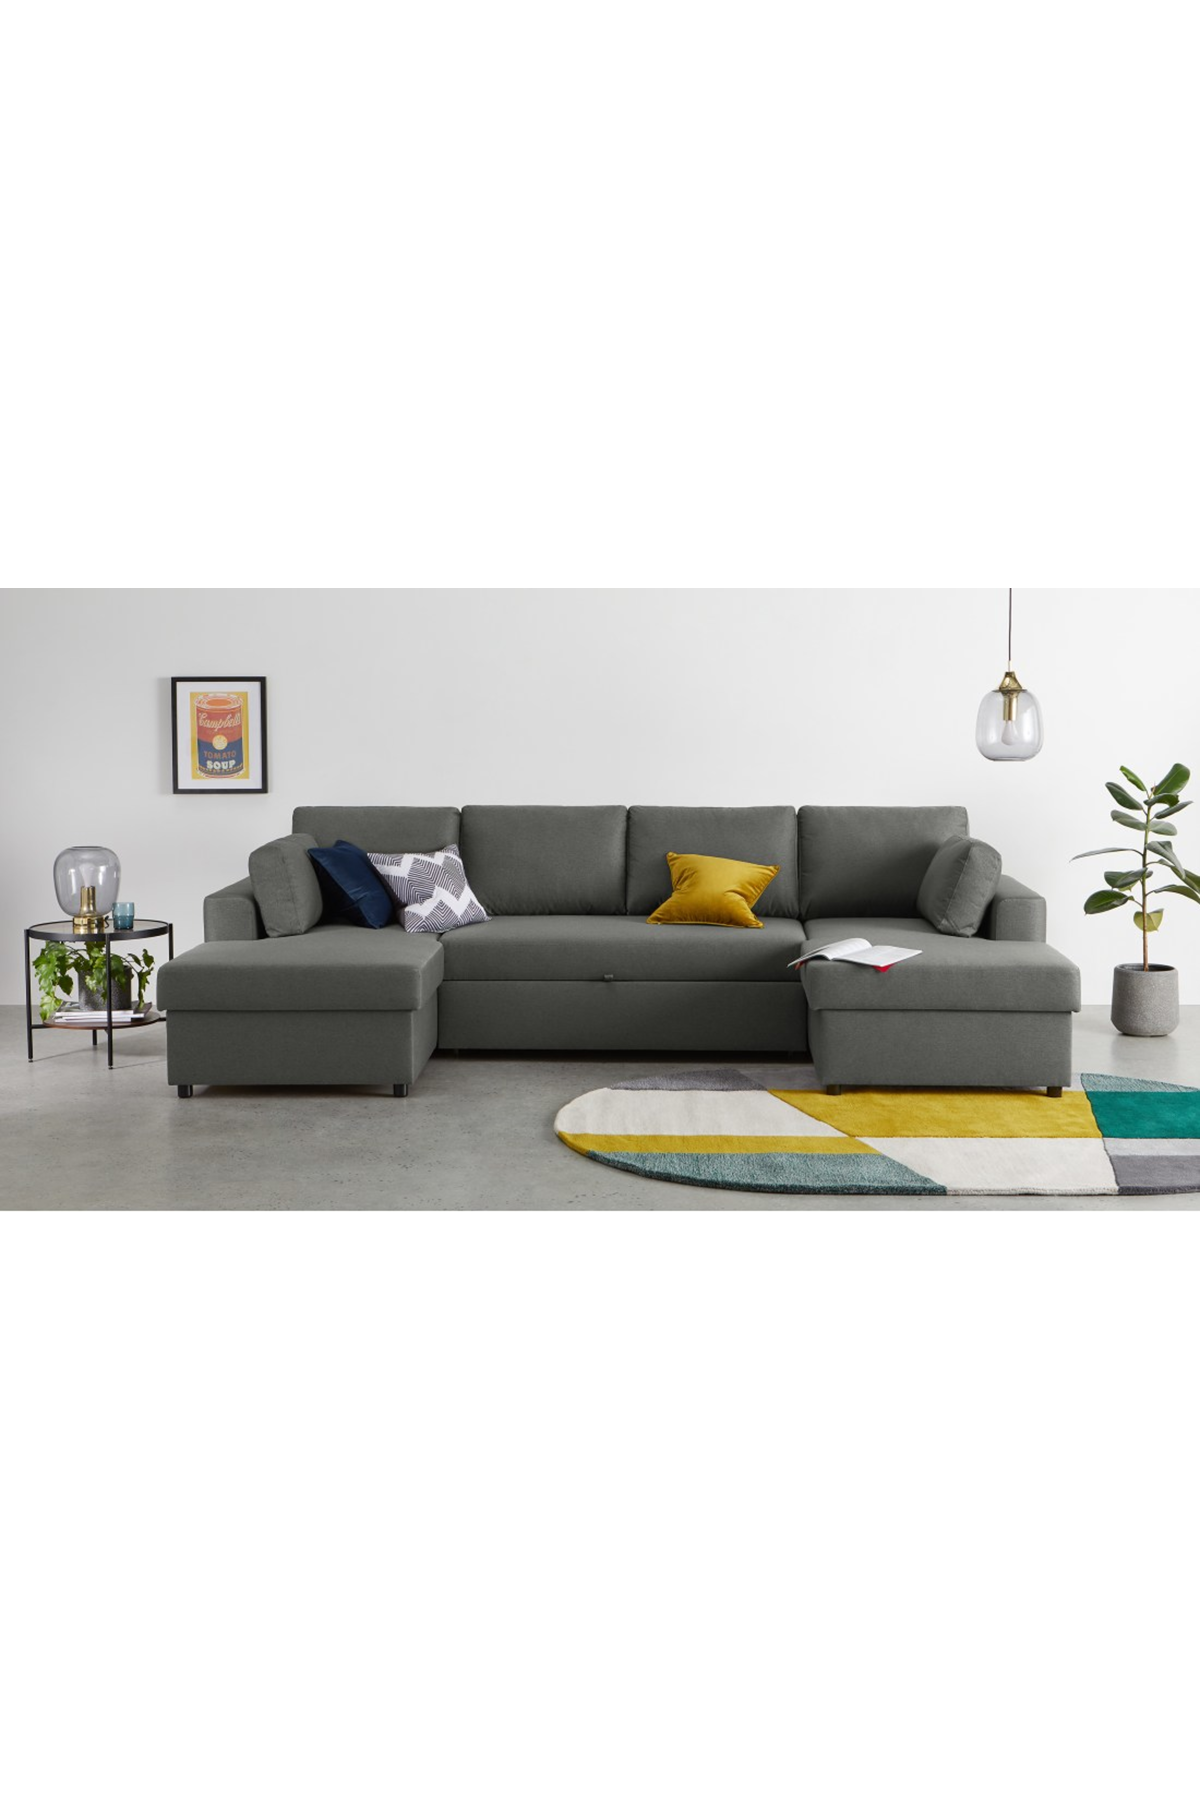 Aidian Large Corner Sofa Bed with Storage, Pigeon Grey ...